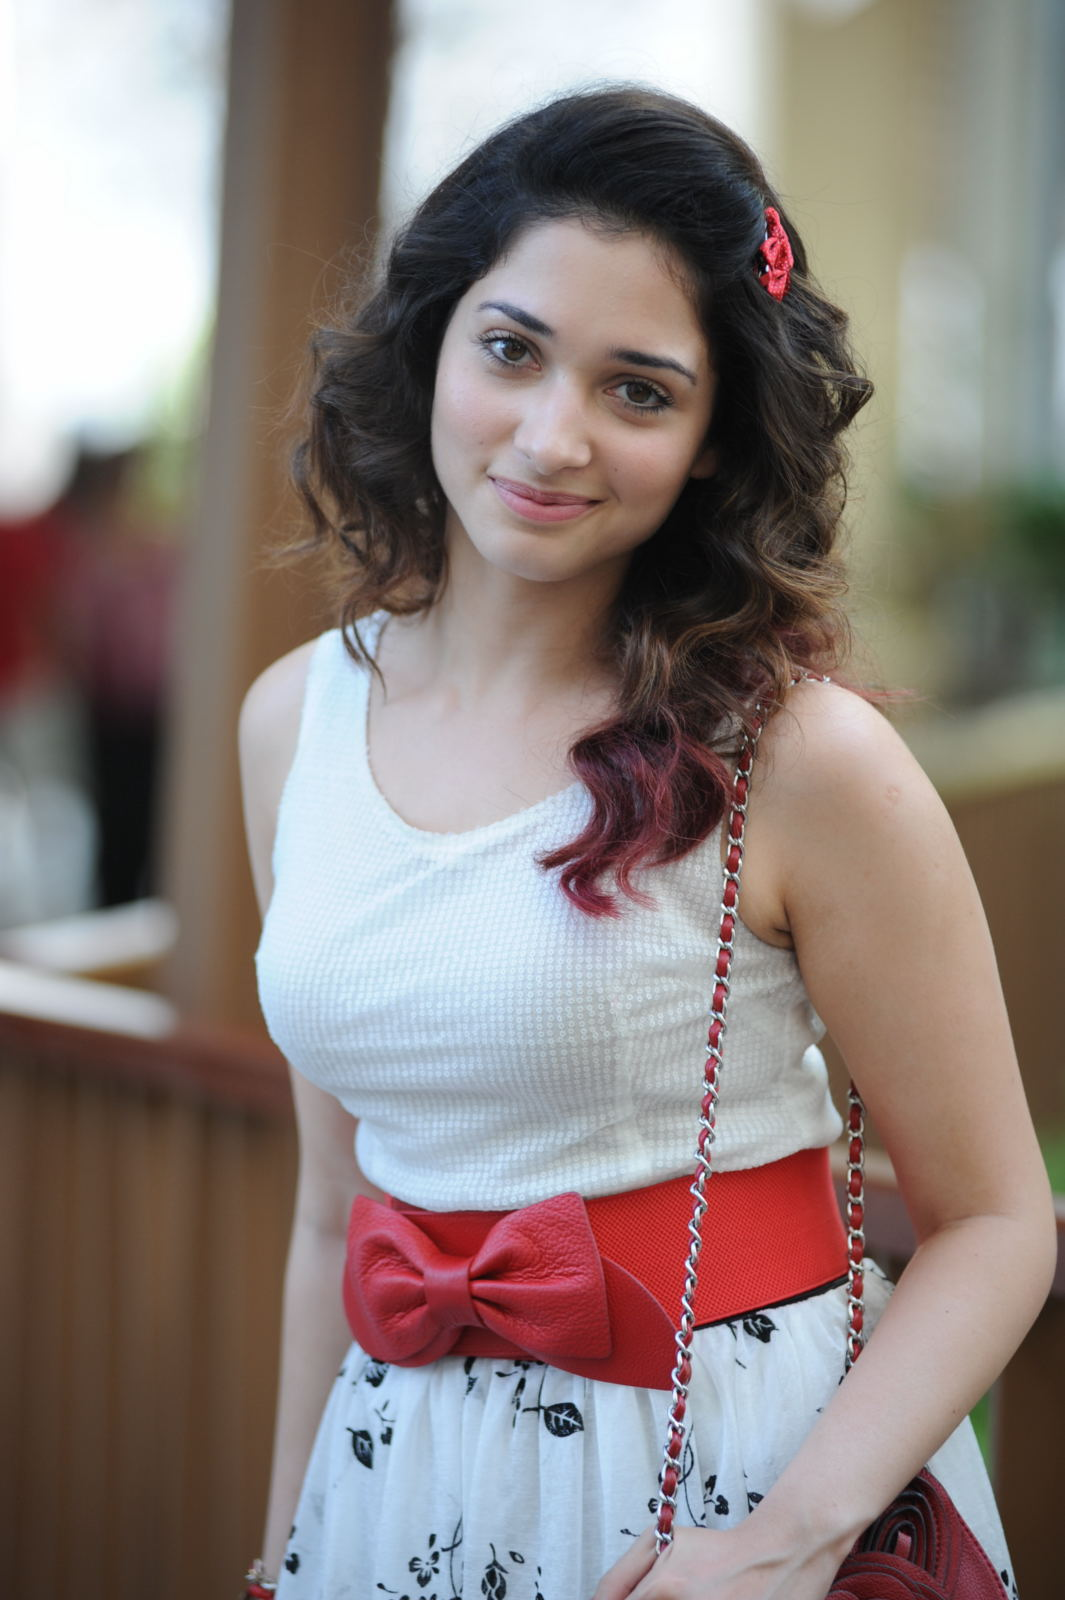 Tamanna Photo Gallery: TamiL MoviE RoaminG: Tamanna Latest Beauty Full Photos